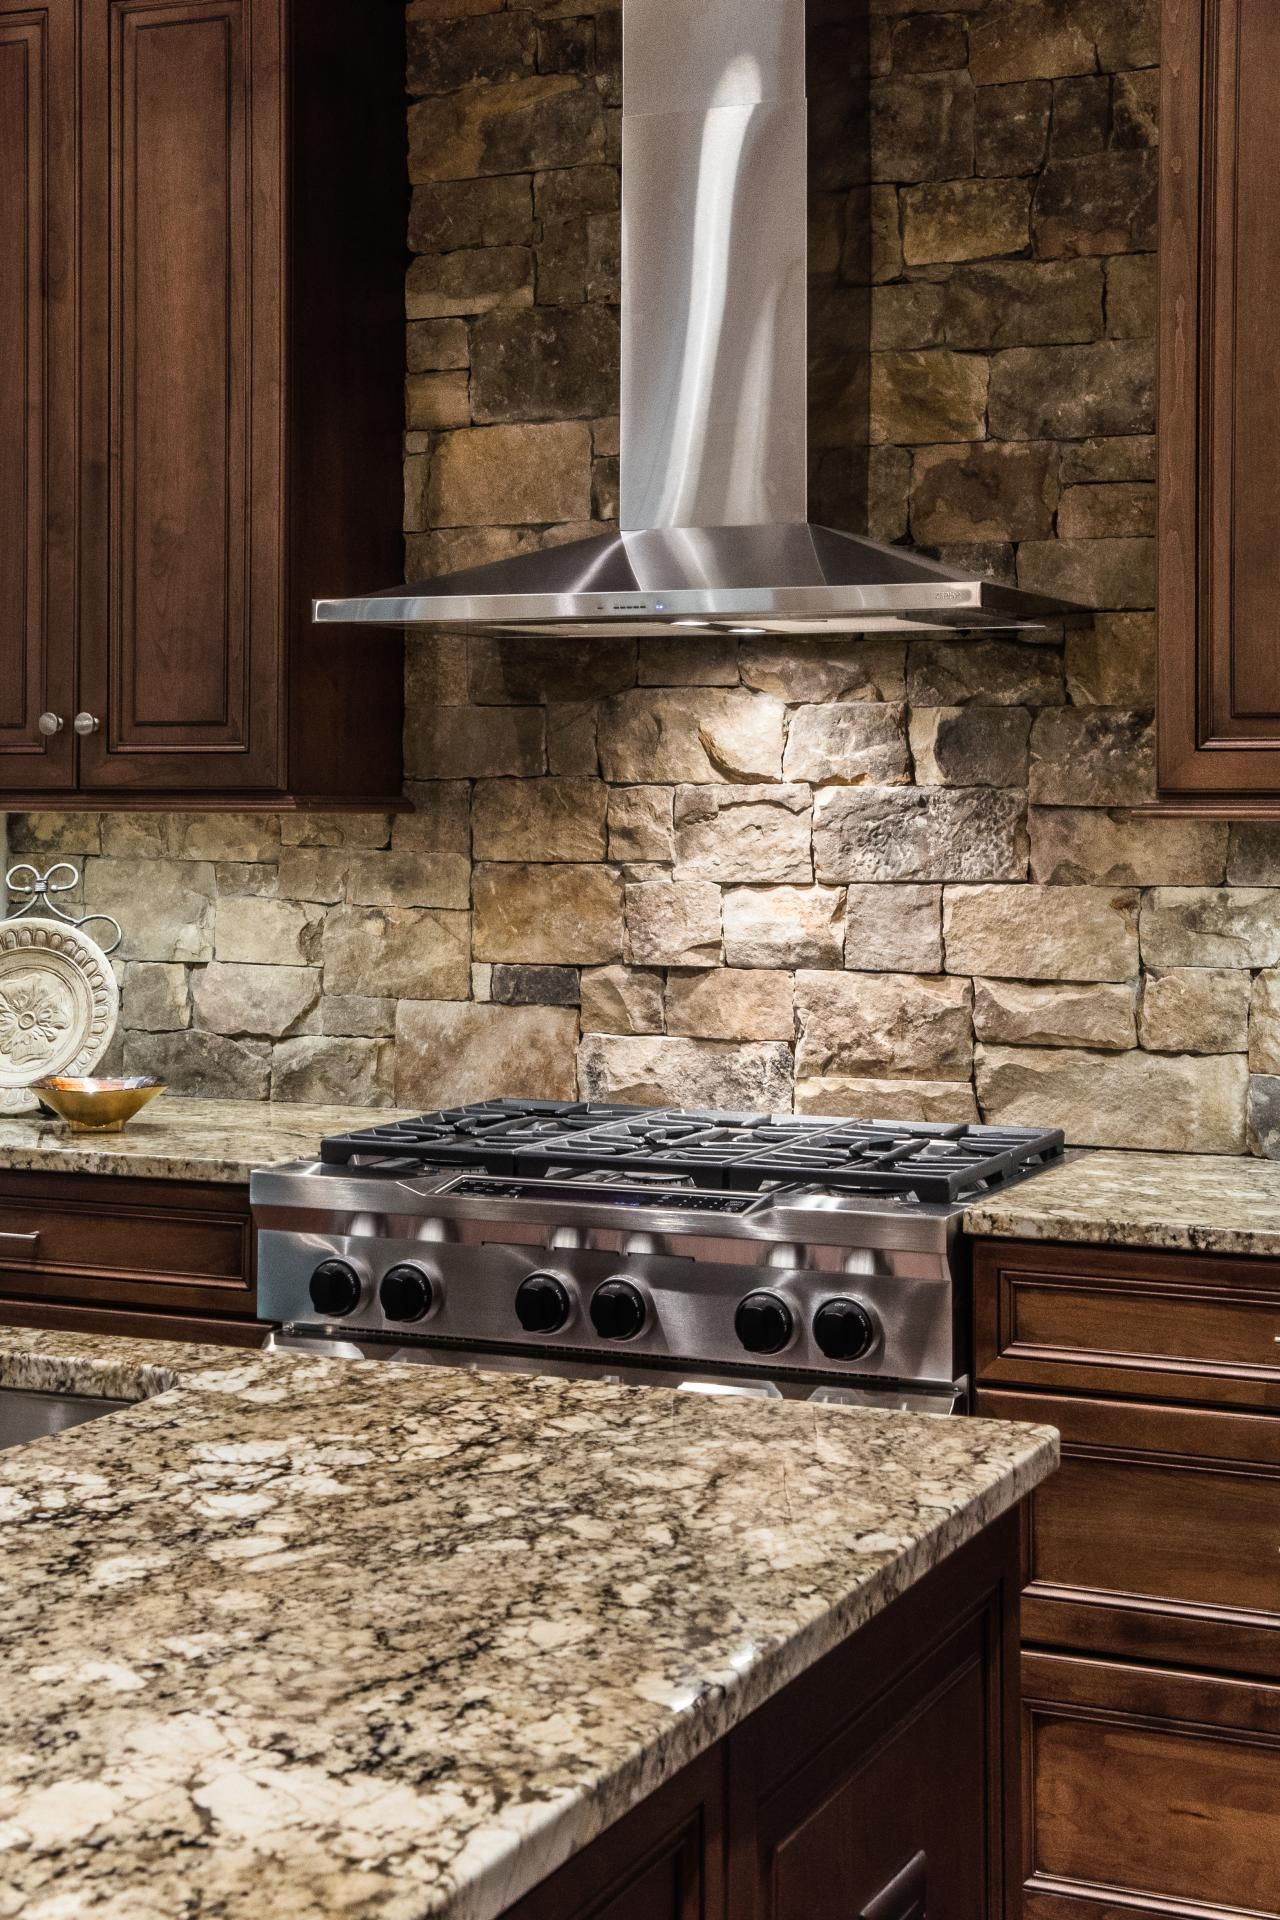 Amazing A Stainless Steel Range Hood Is A Sleek, Contemporary Counterpoint To The  Stacked Stone Backsplash.